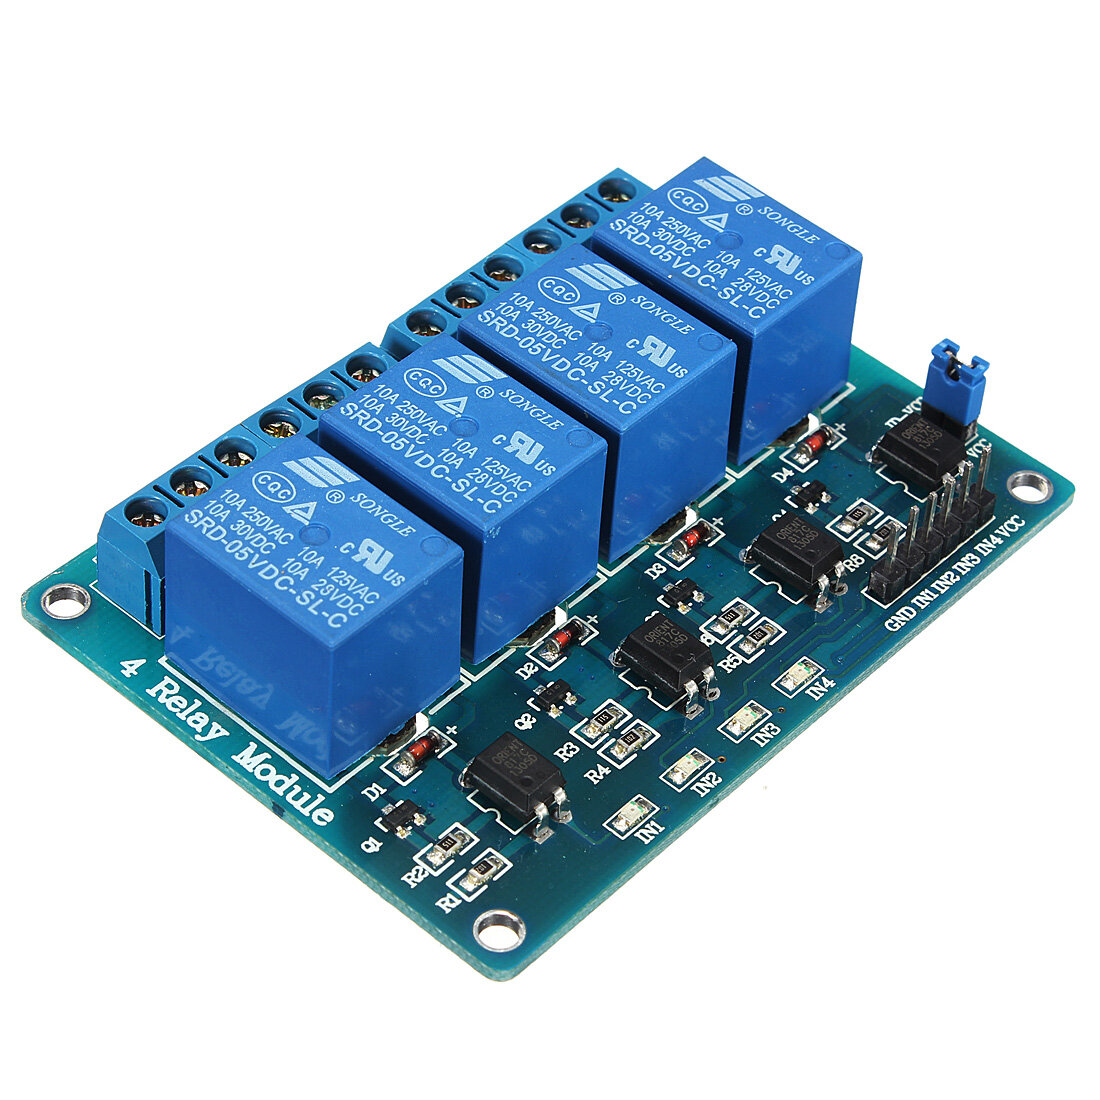 Geekcreit® 5V 4 Channel Relay Module For Arduino PIC ARM DSP AVR MSP430 Blue